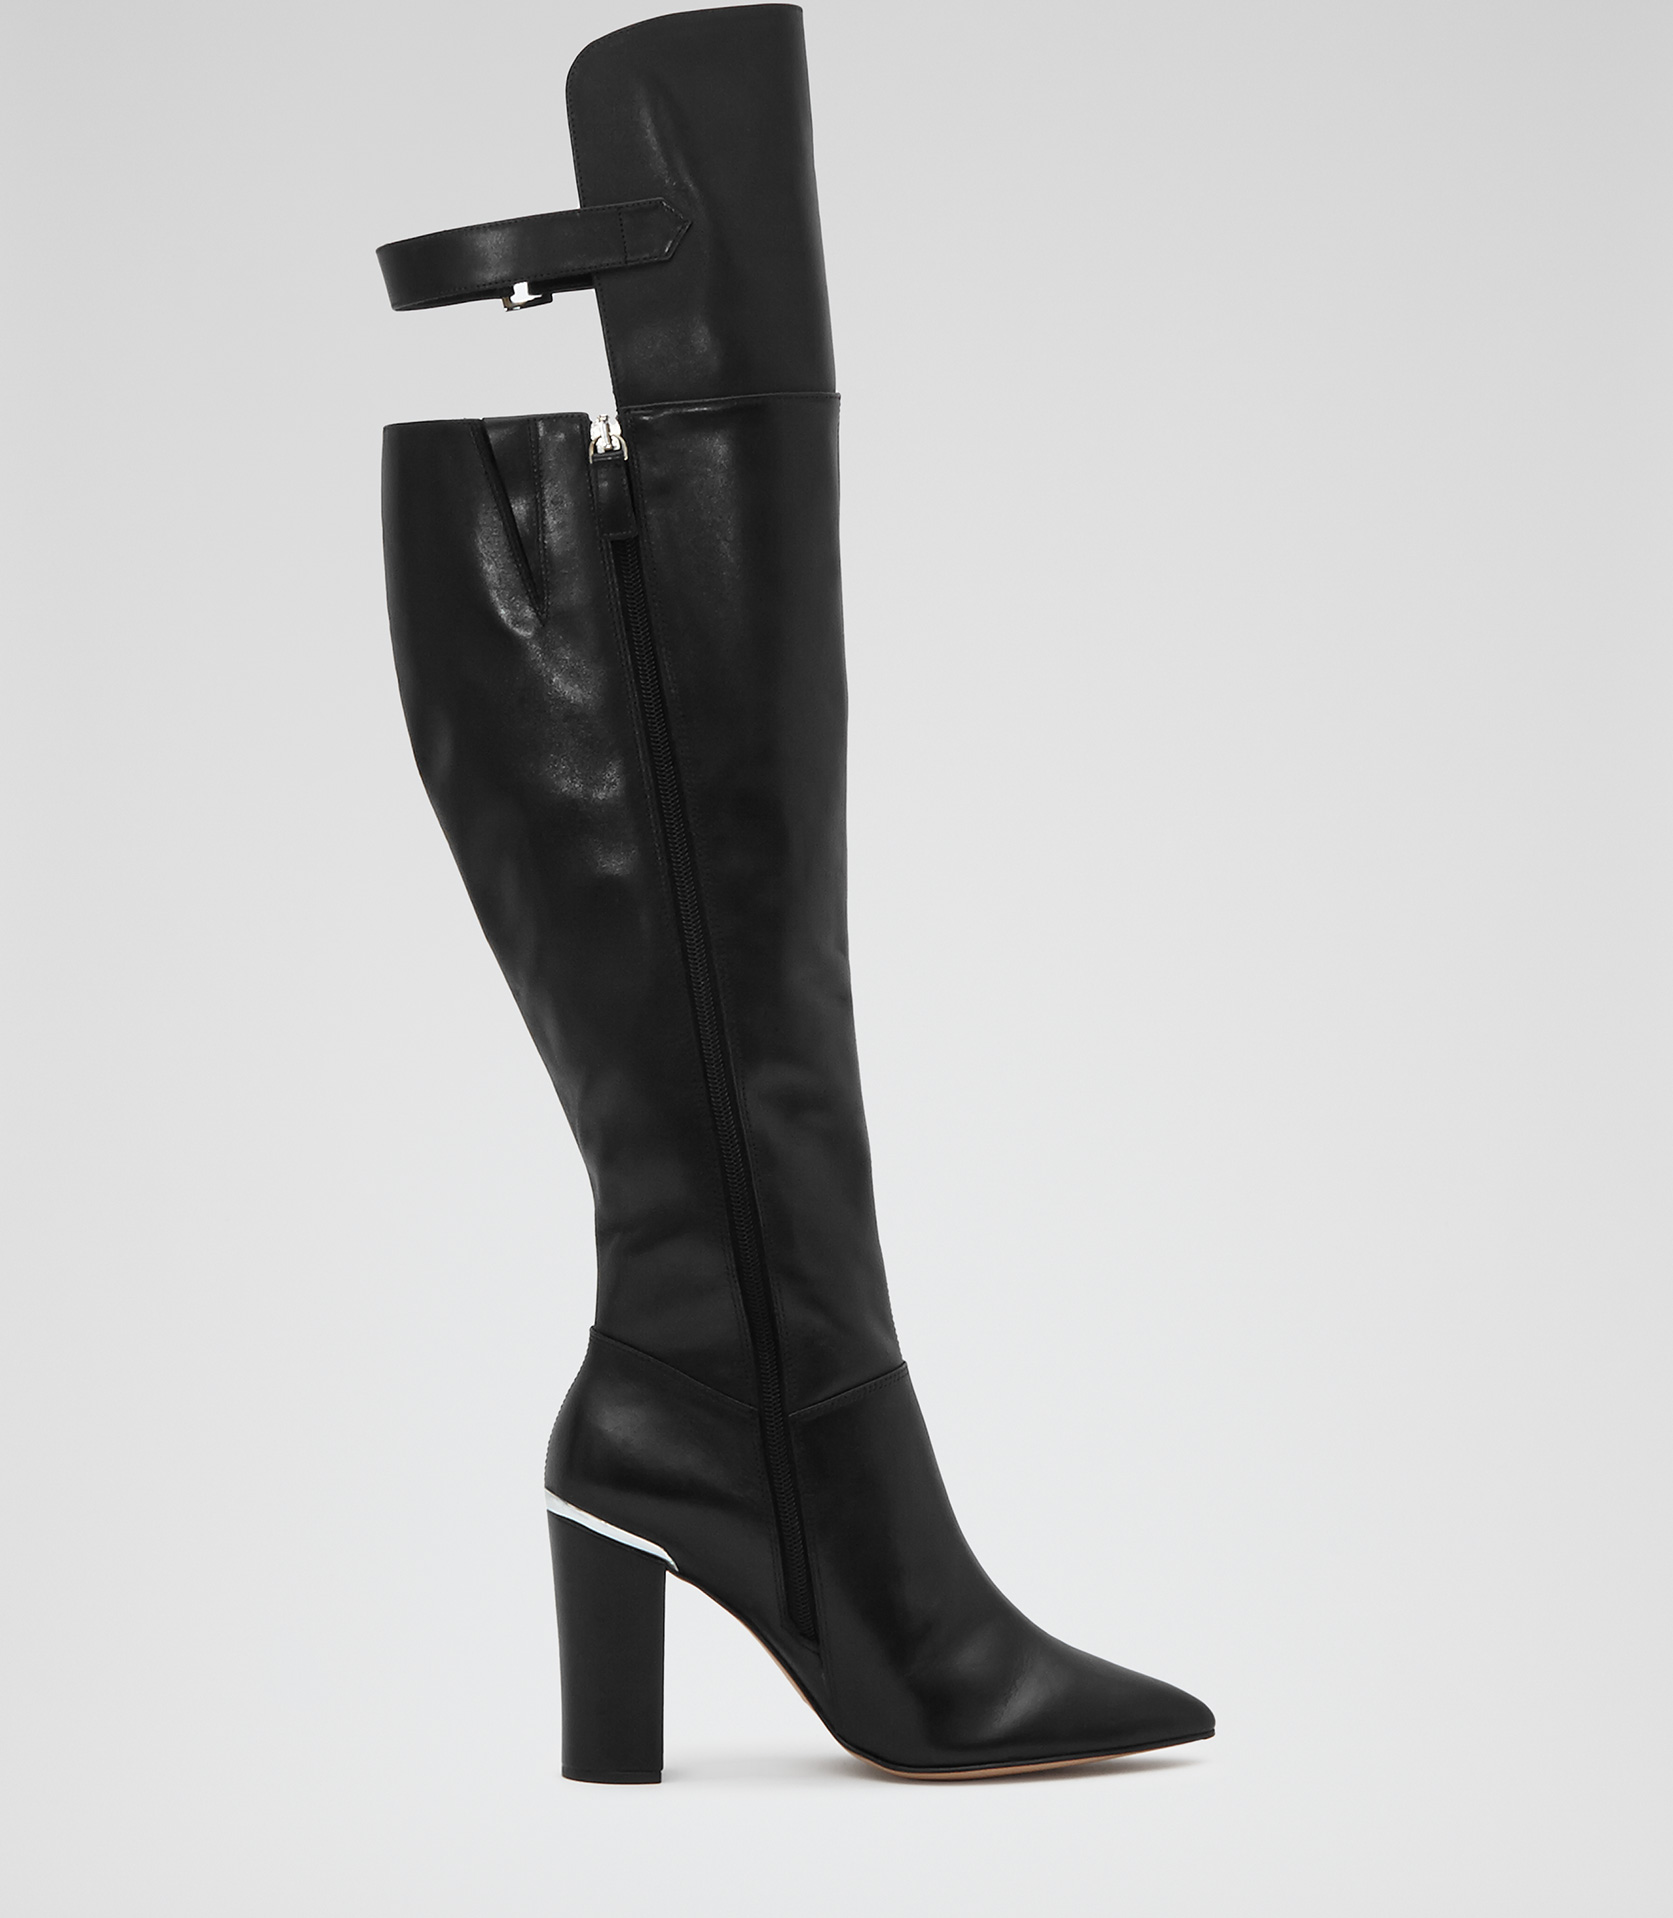 Swanson Black Over-the-knee Leather Boots - REISS